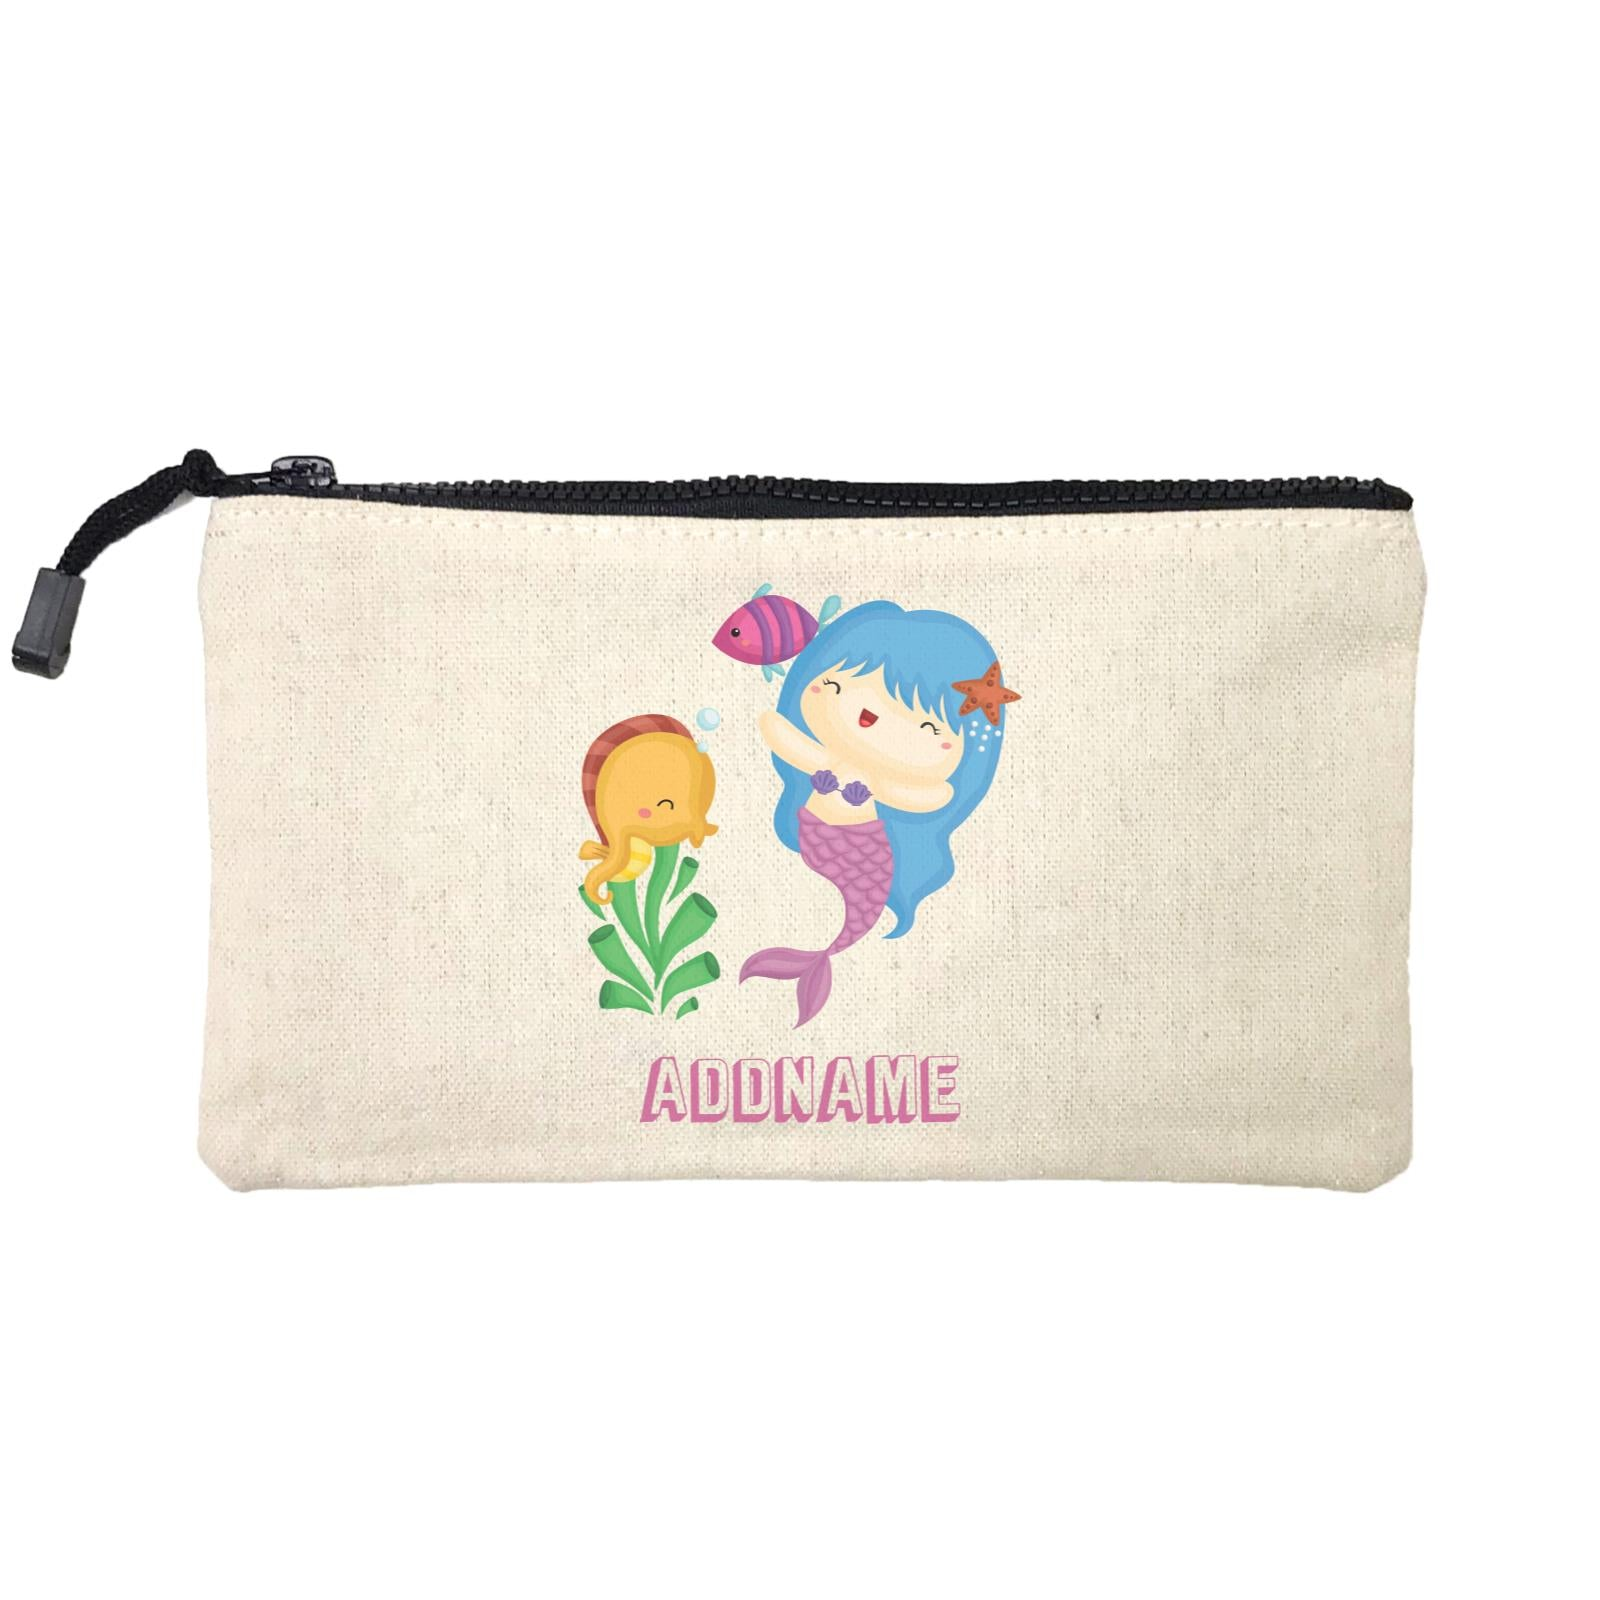 Birthday Mermaid Blue Hair Mermaid Playing With Seahorse Addname Mini Accessories Stationery Pouch